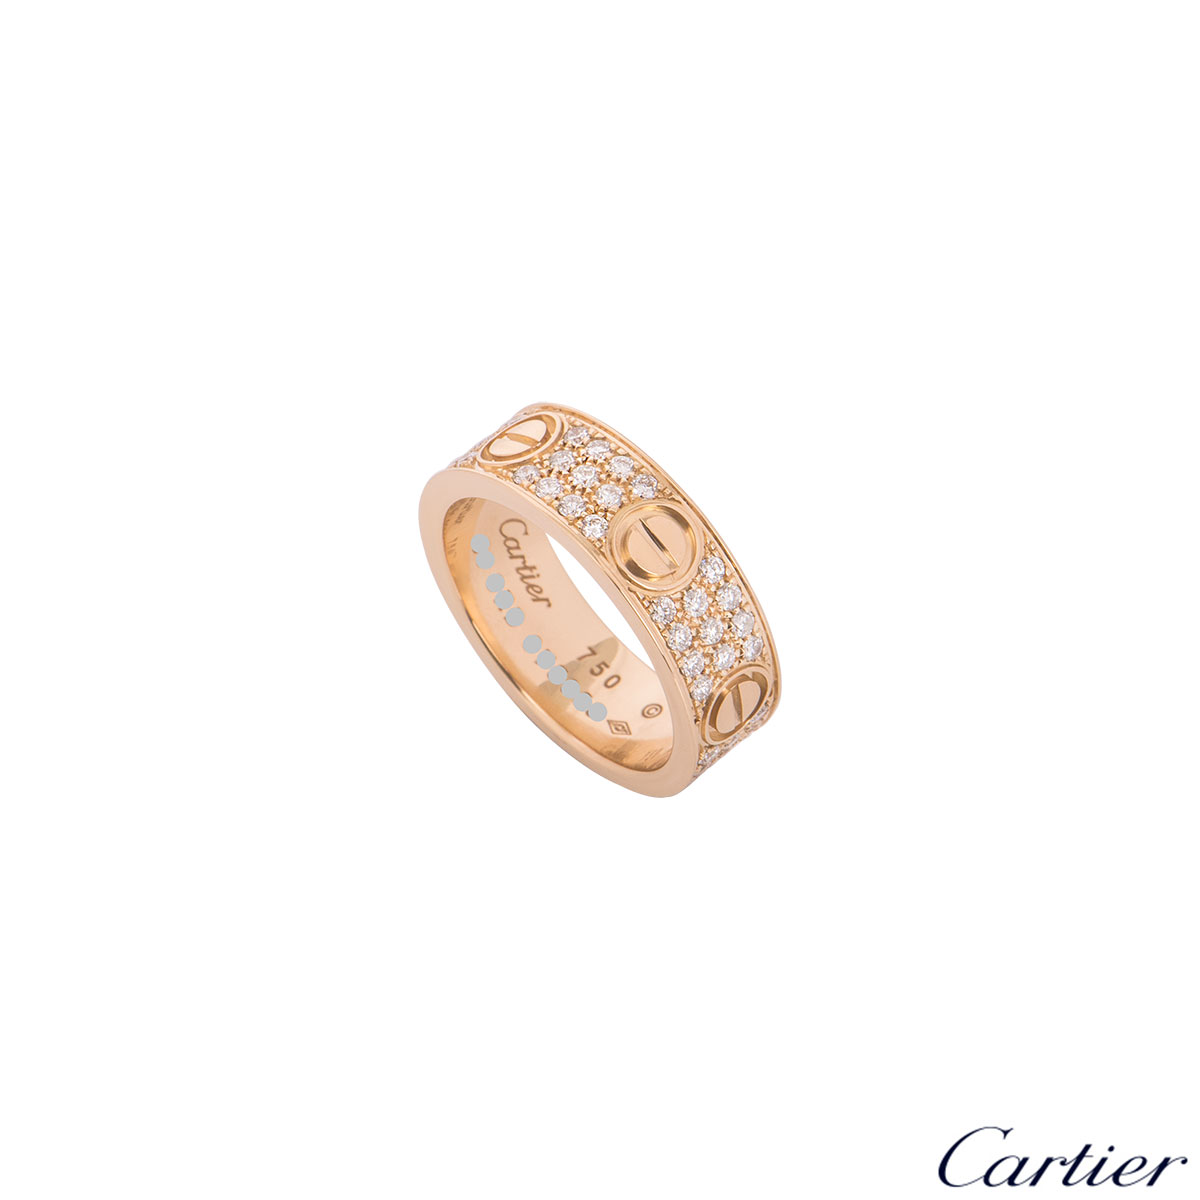 Cartier Rose Gold Pave Diamond Love Ring Size 51 B4087651